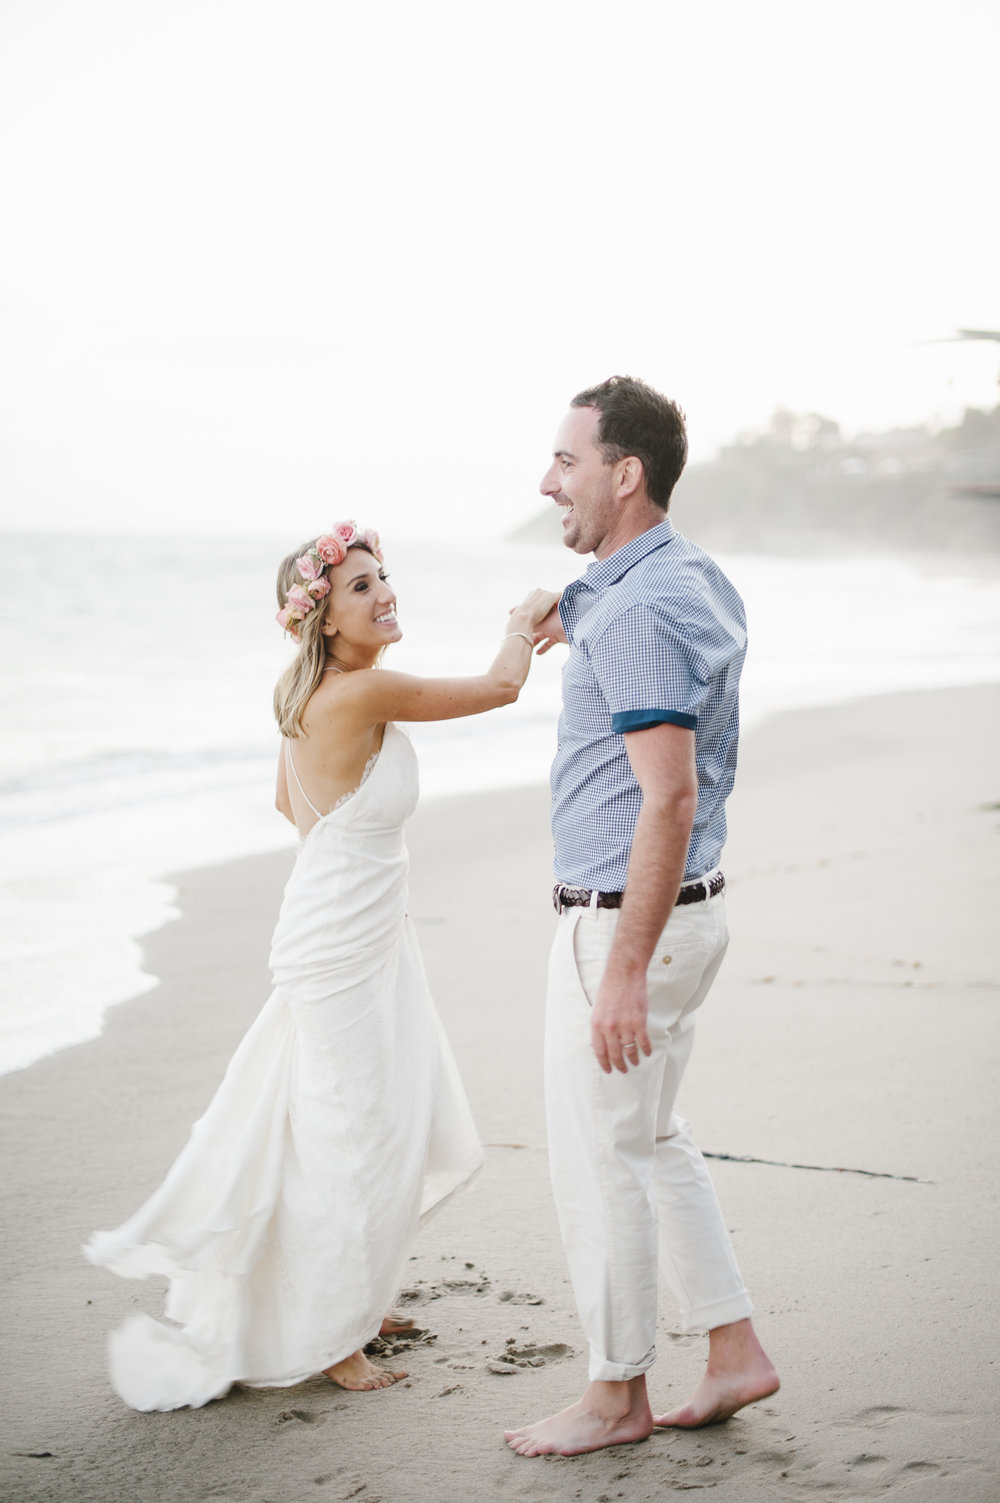 LIZZIE + MATT - Cypress Sea Cove, Malibu